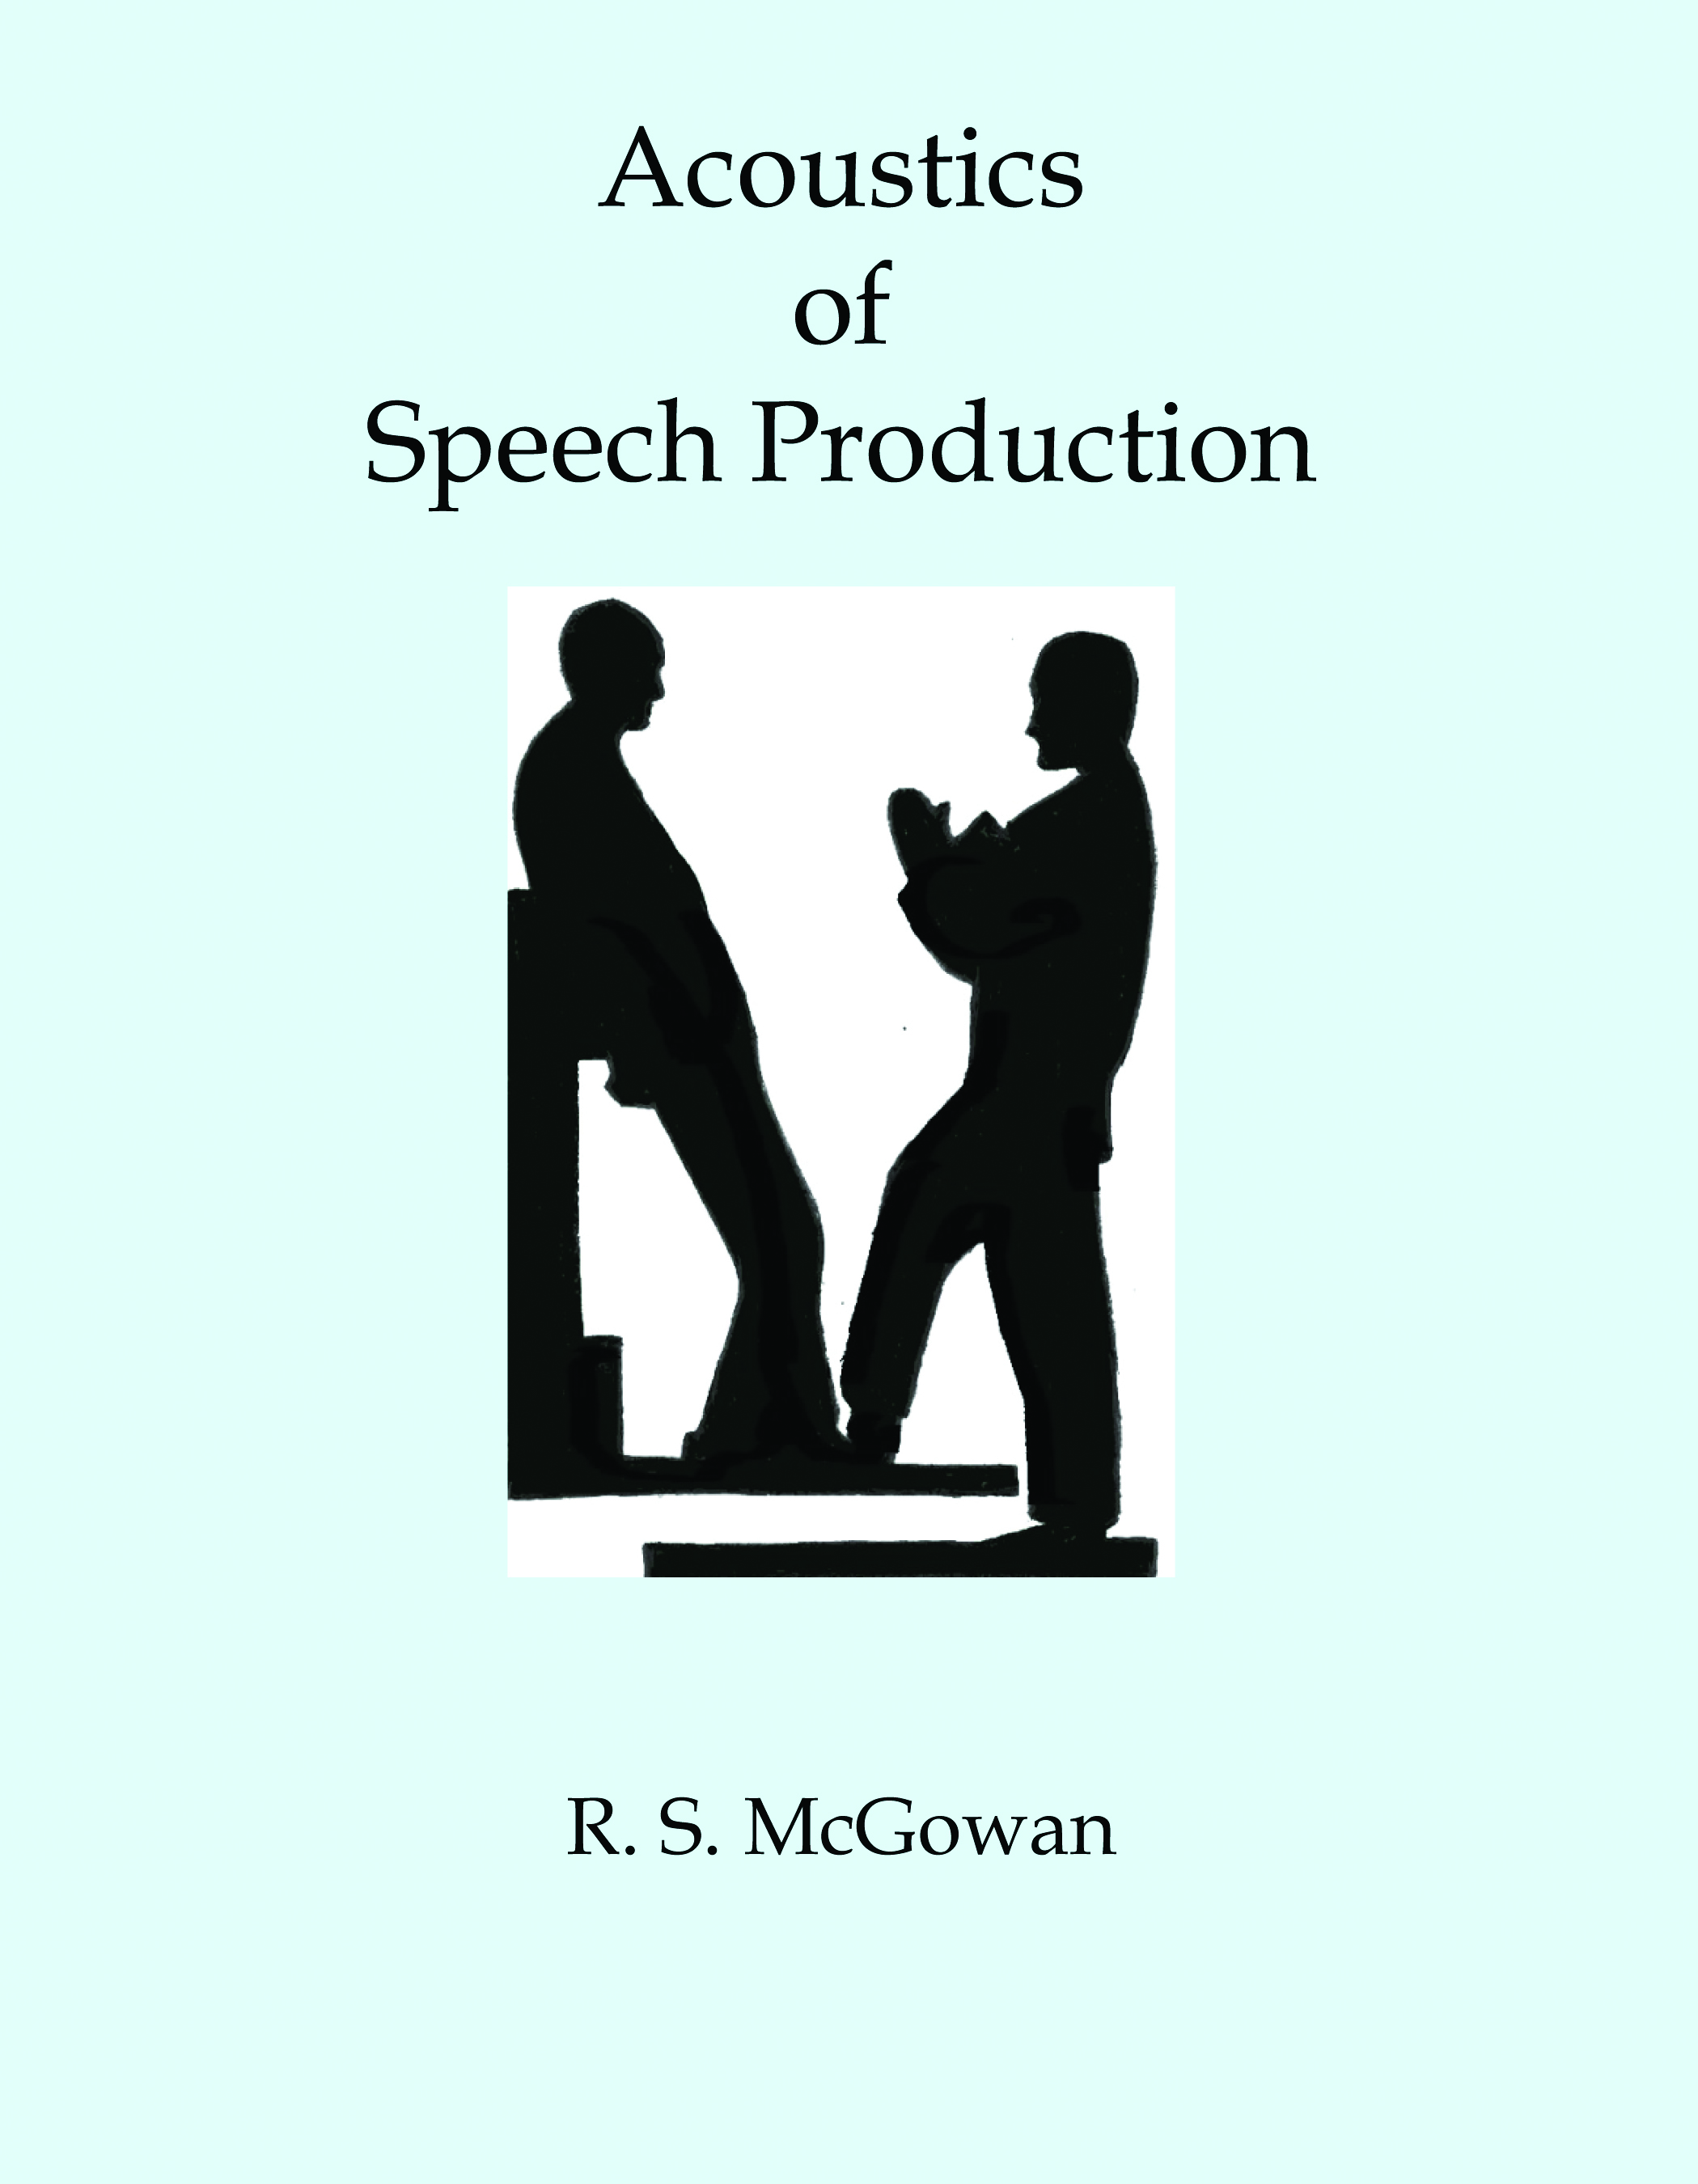 Acoustics of Speech Production